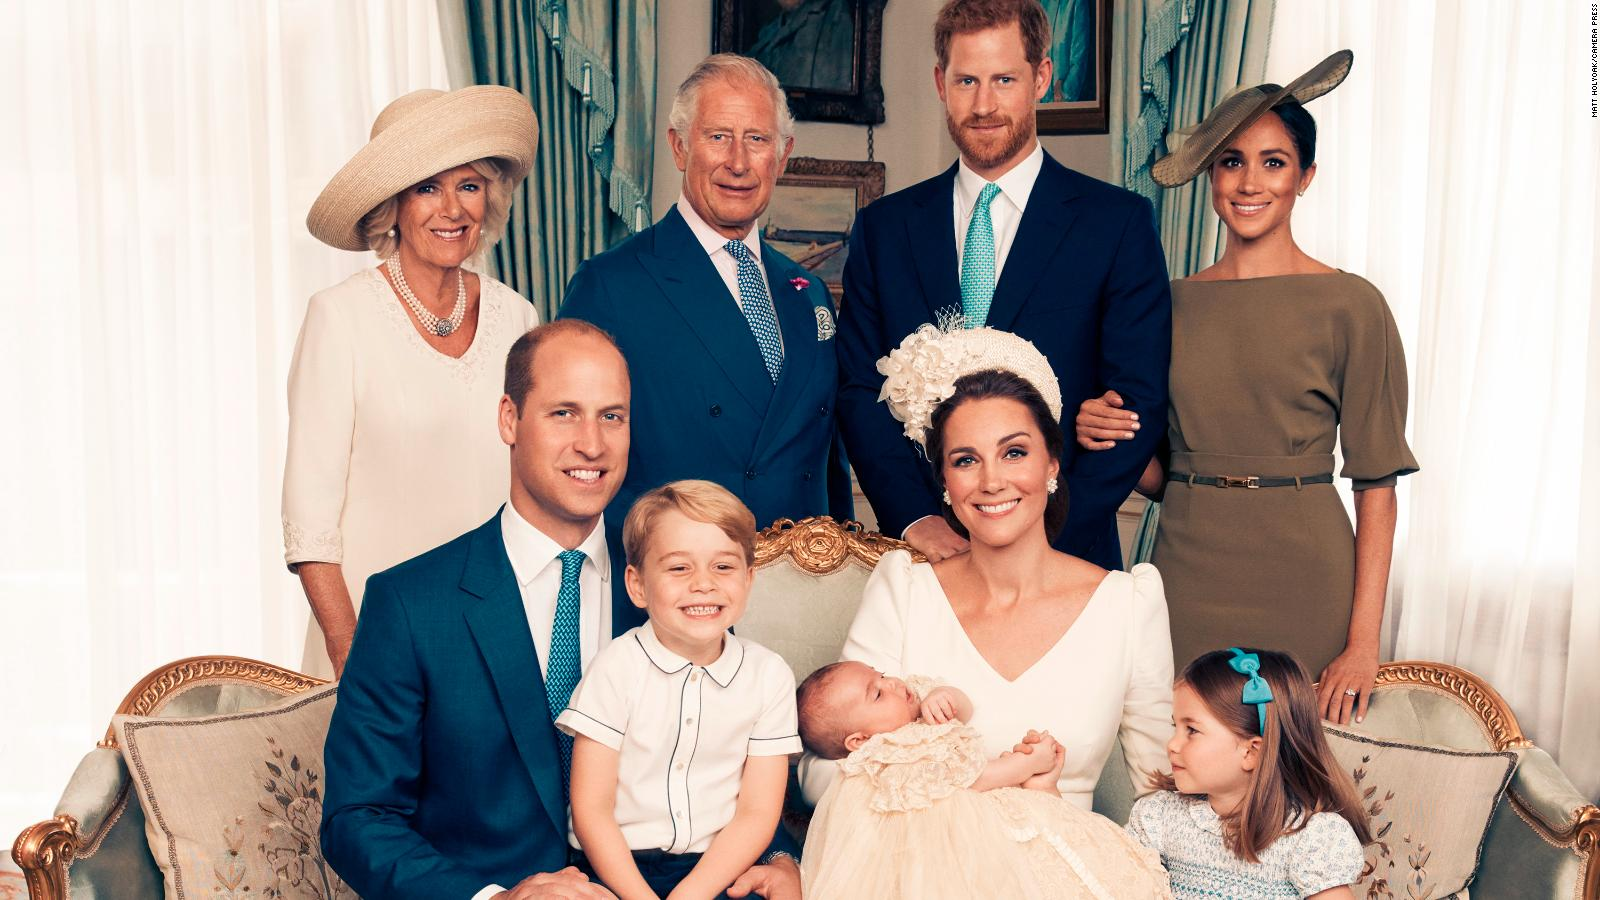 180716101205-01-prince-louis-christening-official-full-169